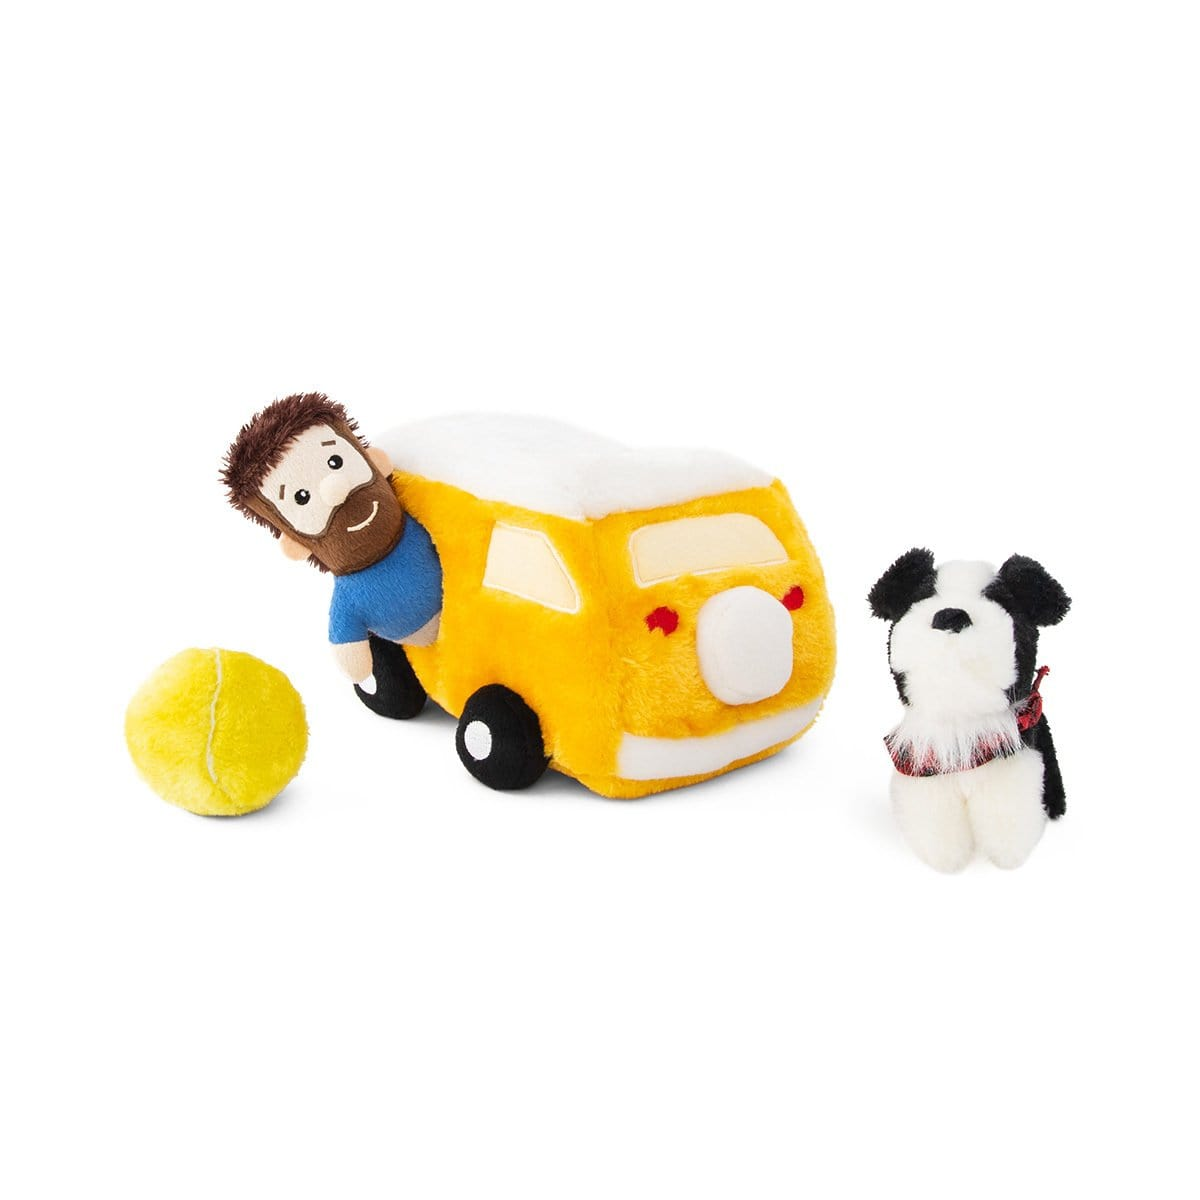 Zippy Paws Zippy Burrow - Momo & Andrew in the Yellow Van Dog Toys